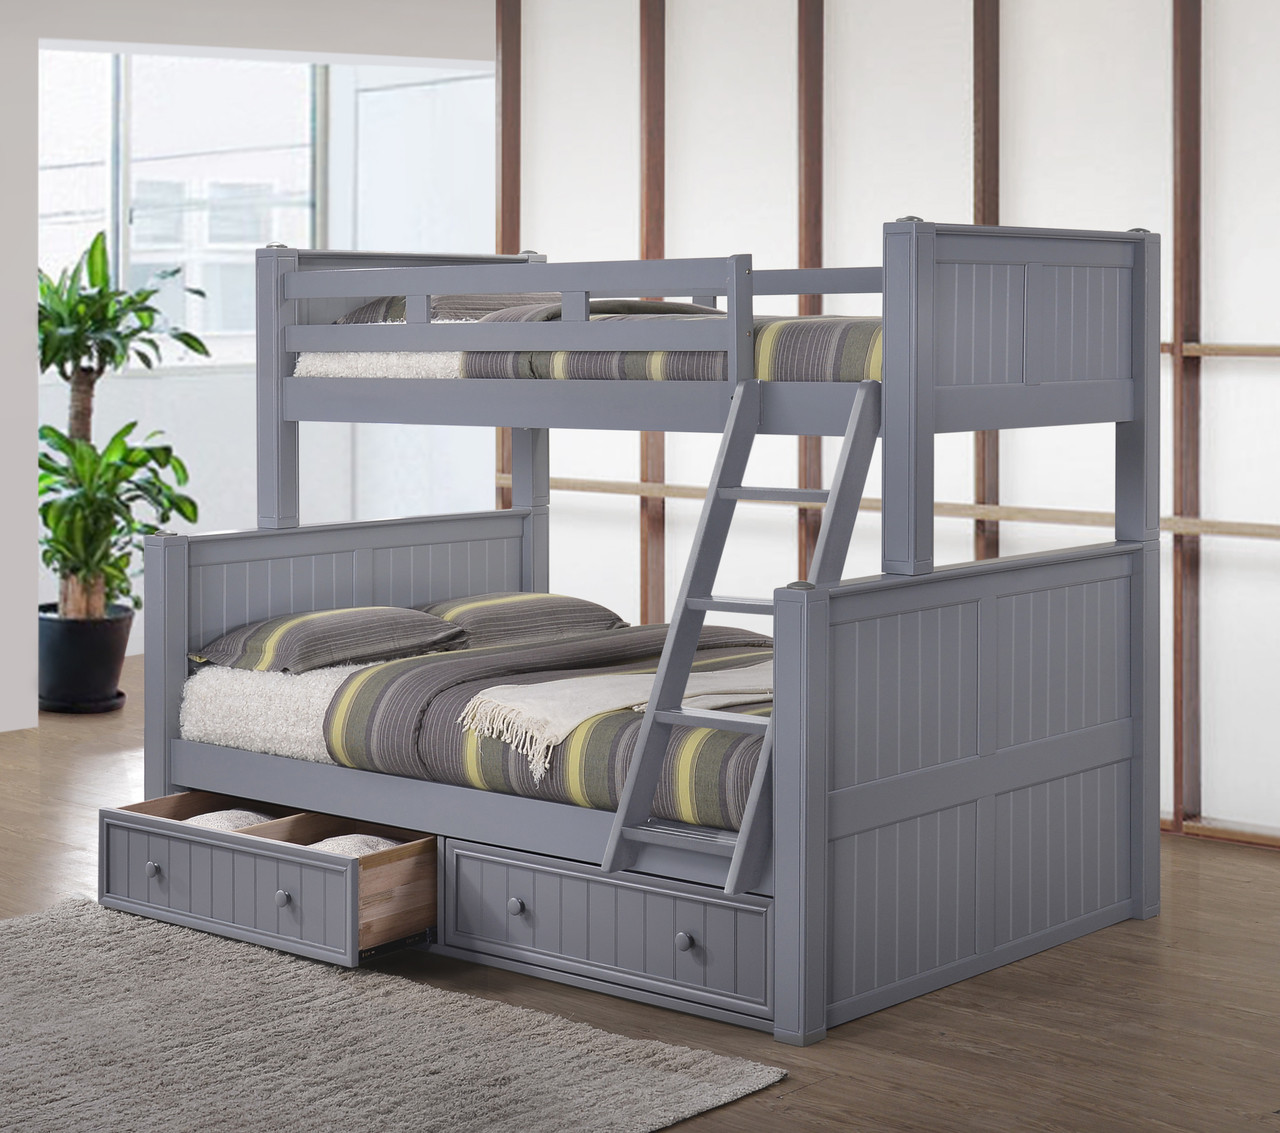 Dillon Blue Twin Full Bunk Bed  Navy Blue Bunk with Trundle Bed